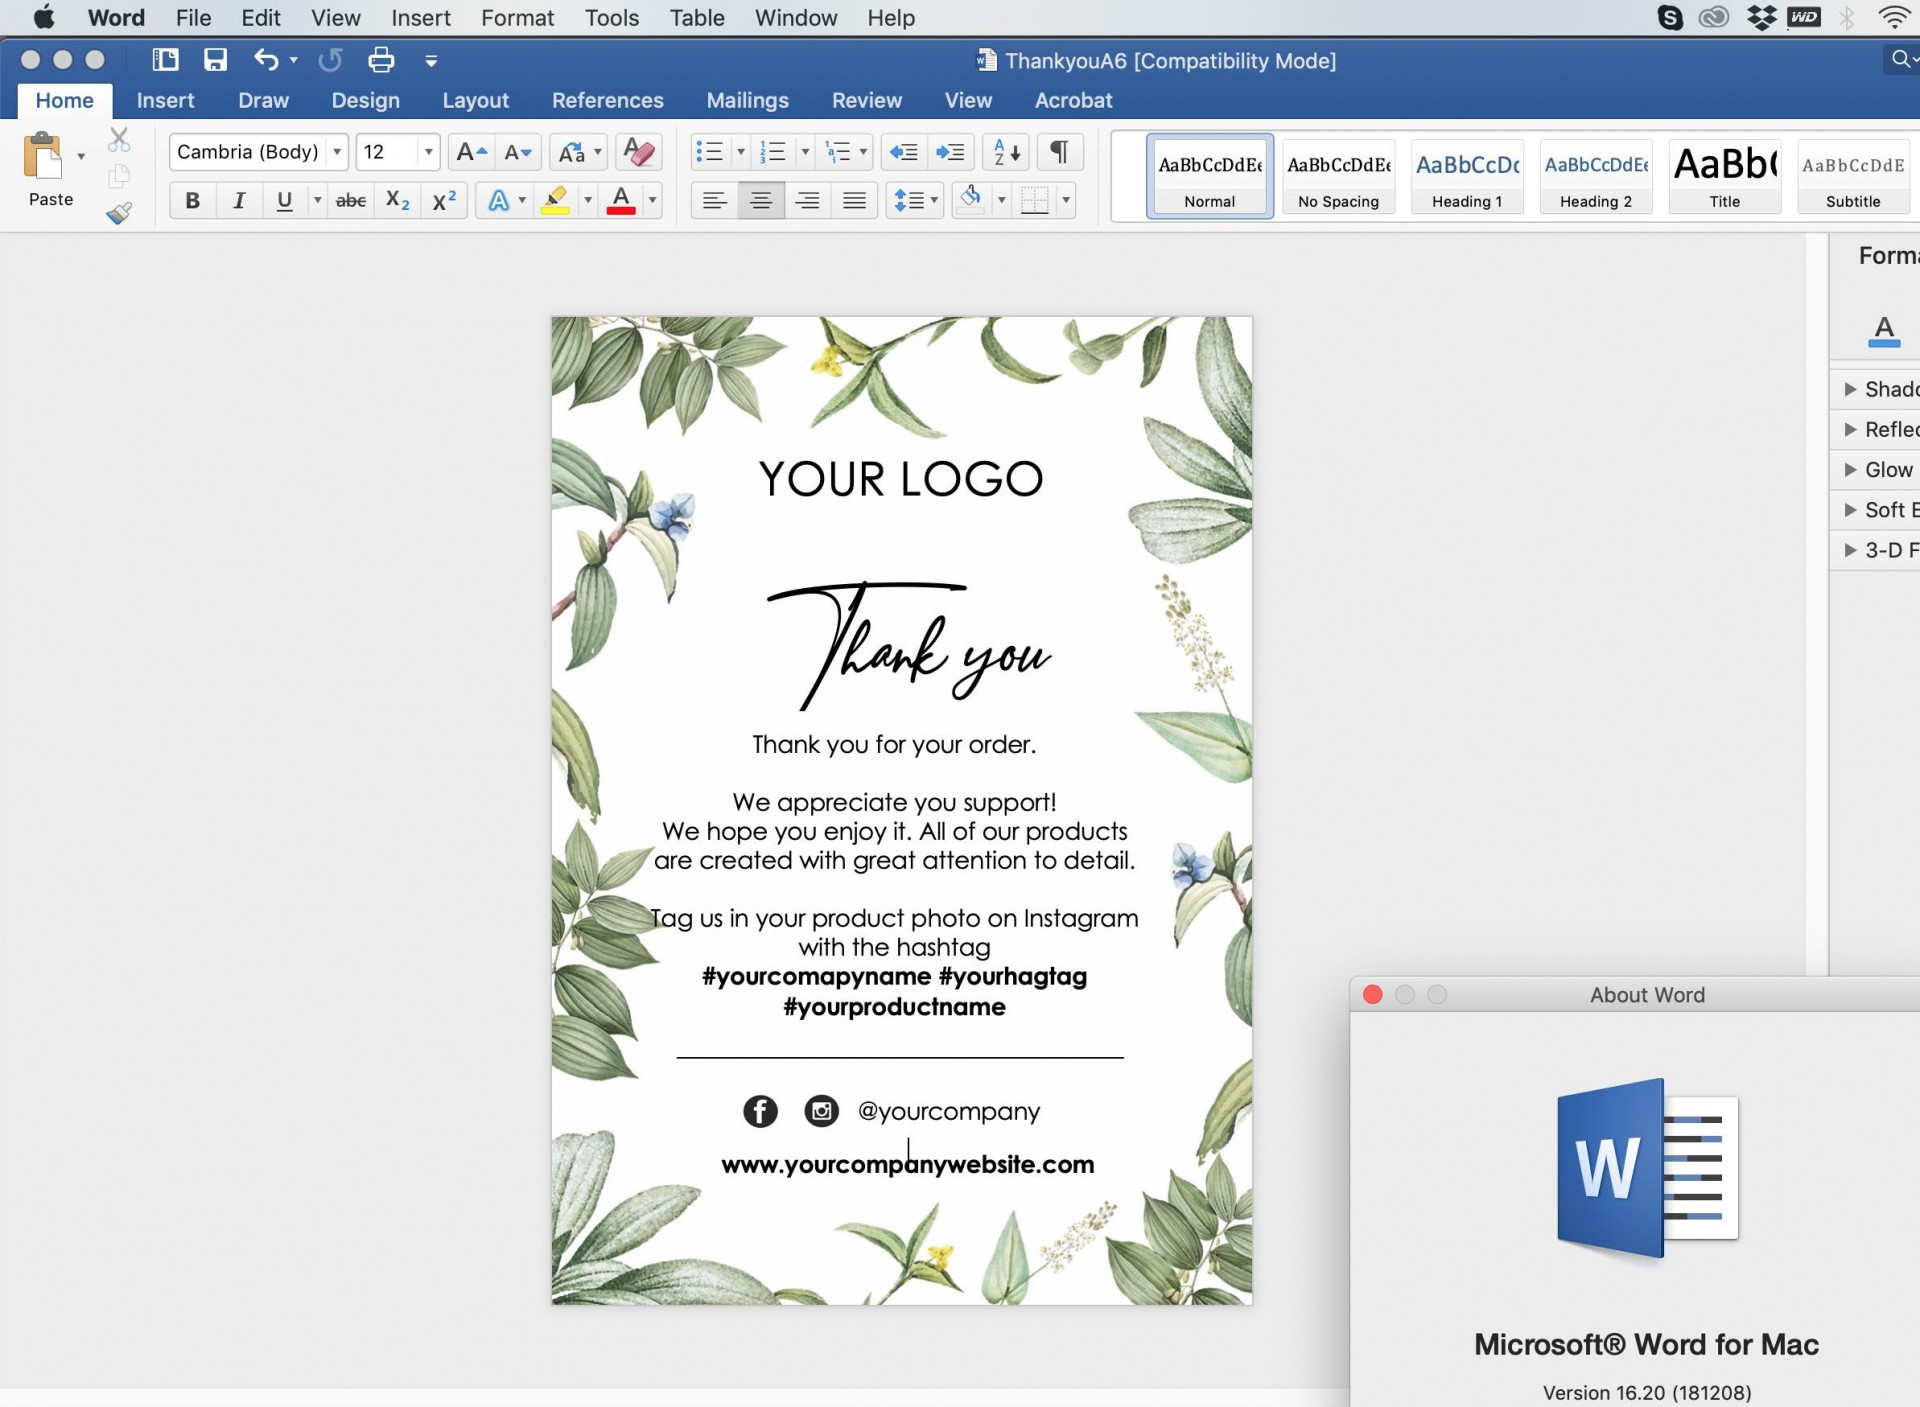 009 Unusual M Word Thank You Note Template Image  Microsoft Interview Letter1920